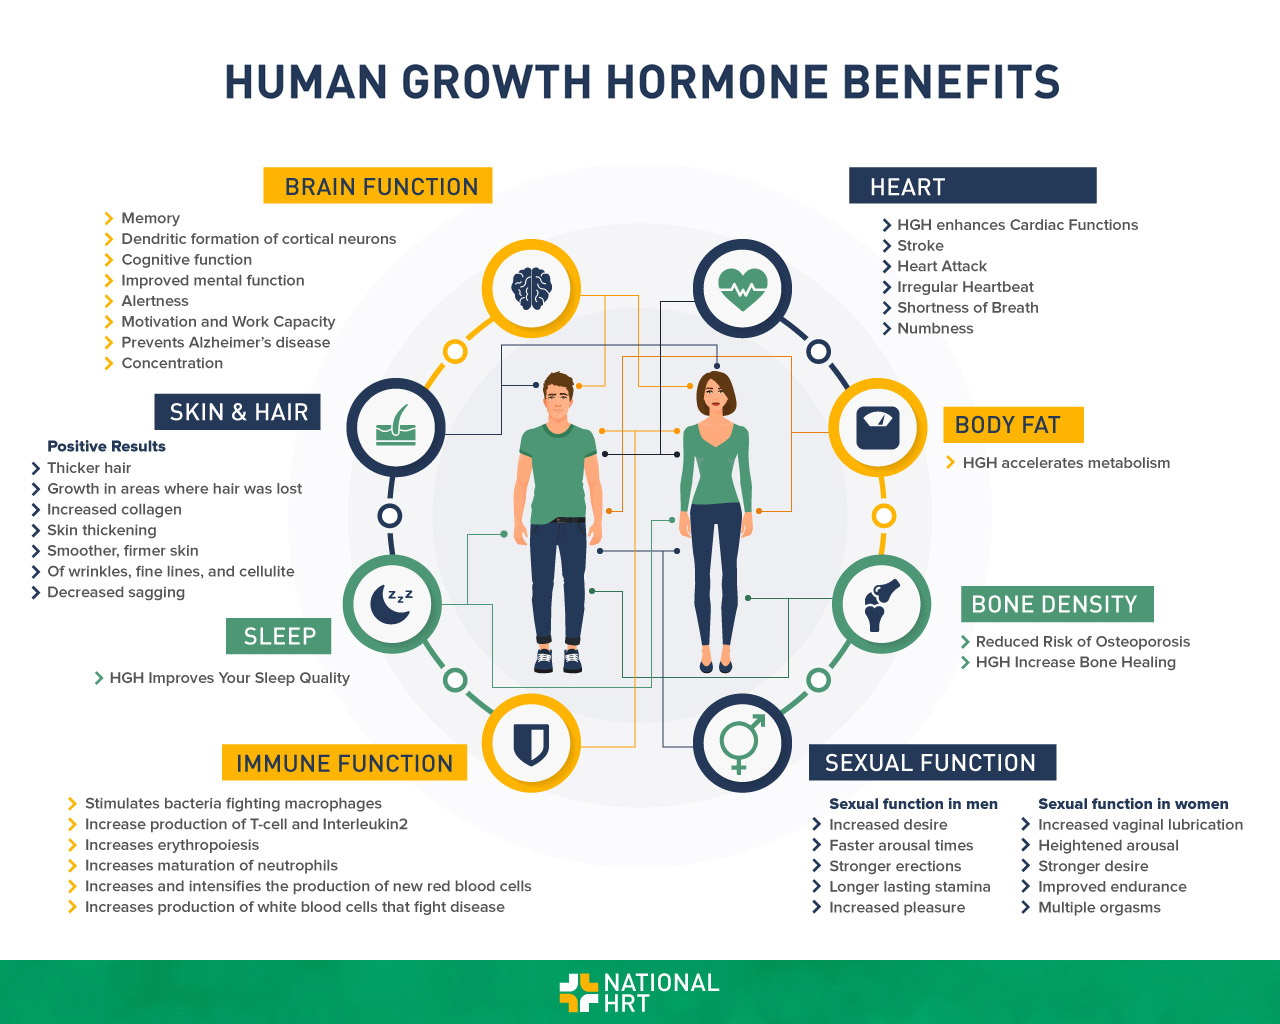 Human growth hormone benefits